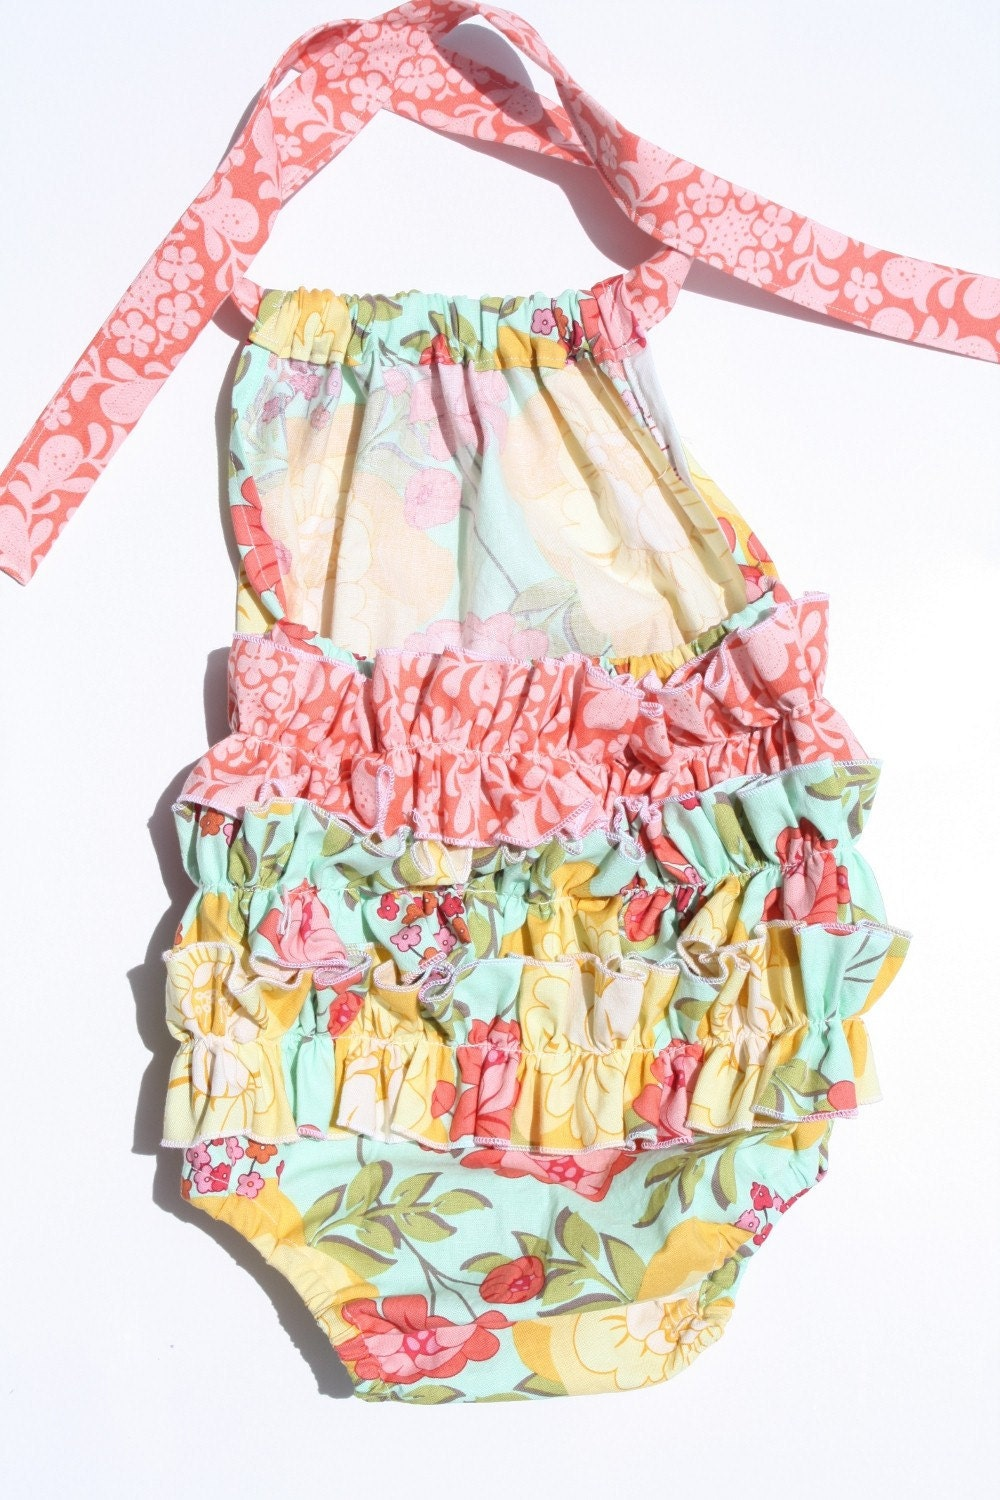 Be interested in other easy baby dress romper tutorials too thanks